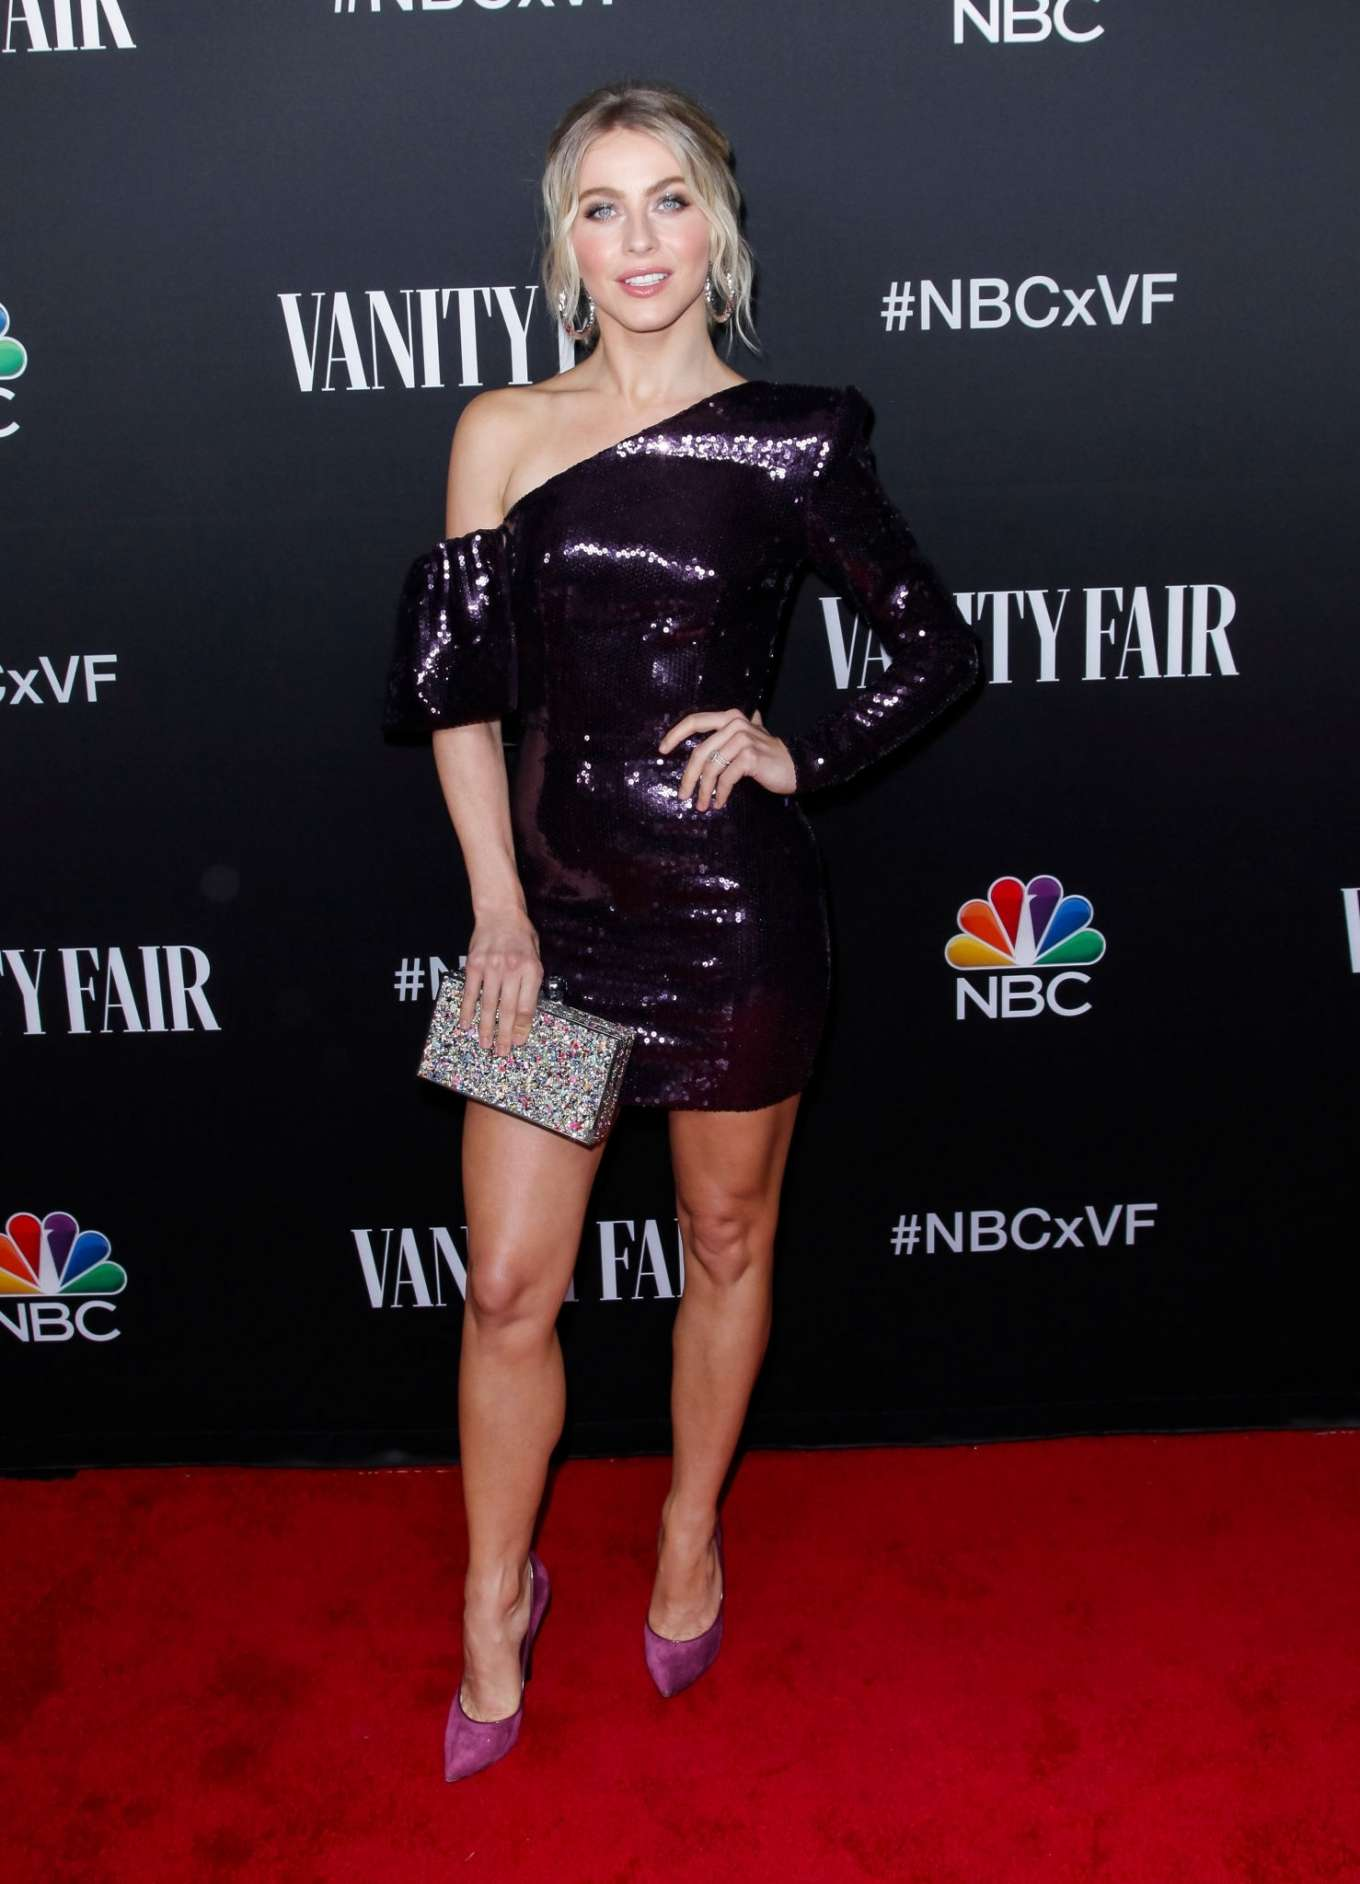 Julianne Hough 2019 : Julianne Hough – NBC and Vanity Fairs Celebration Of The Season-07